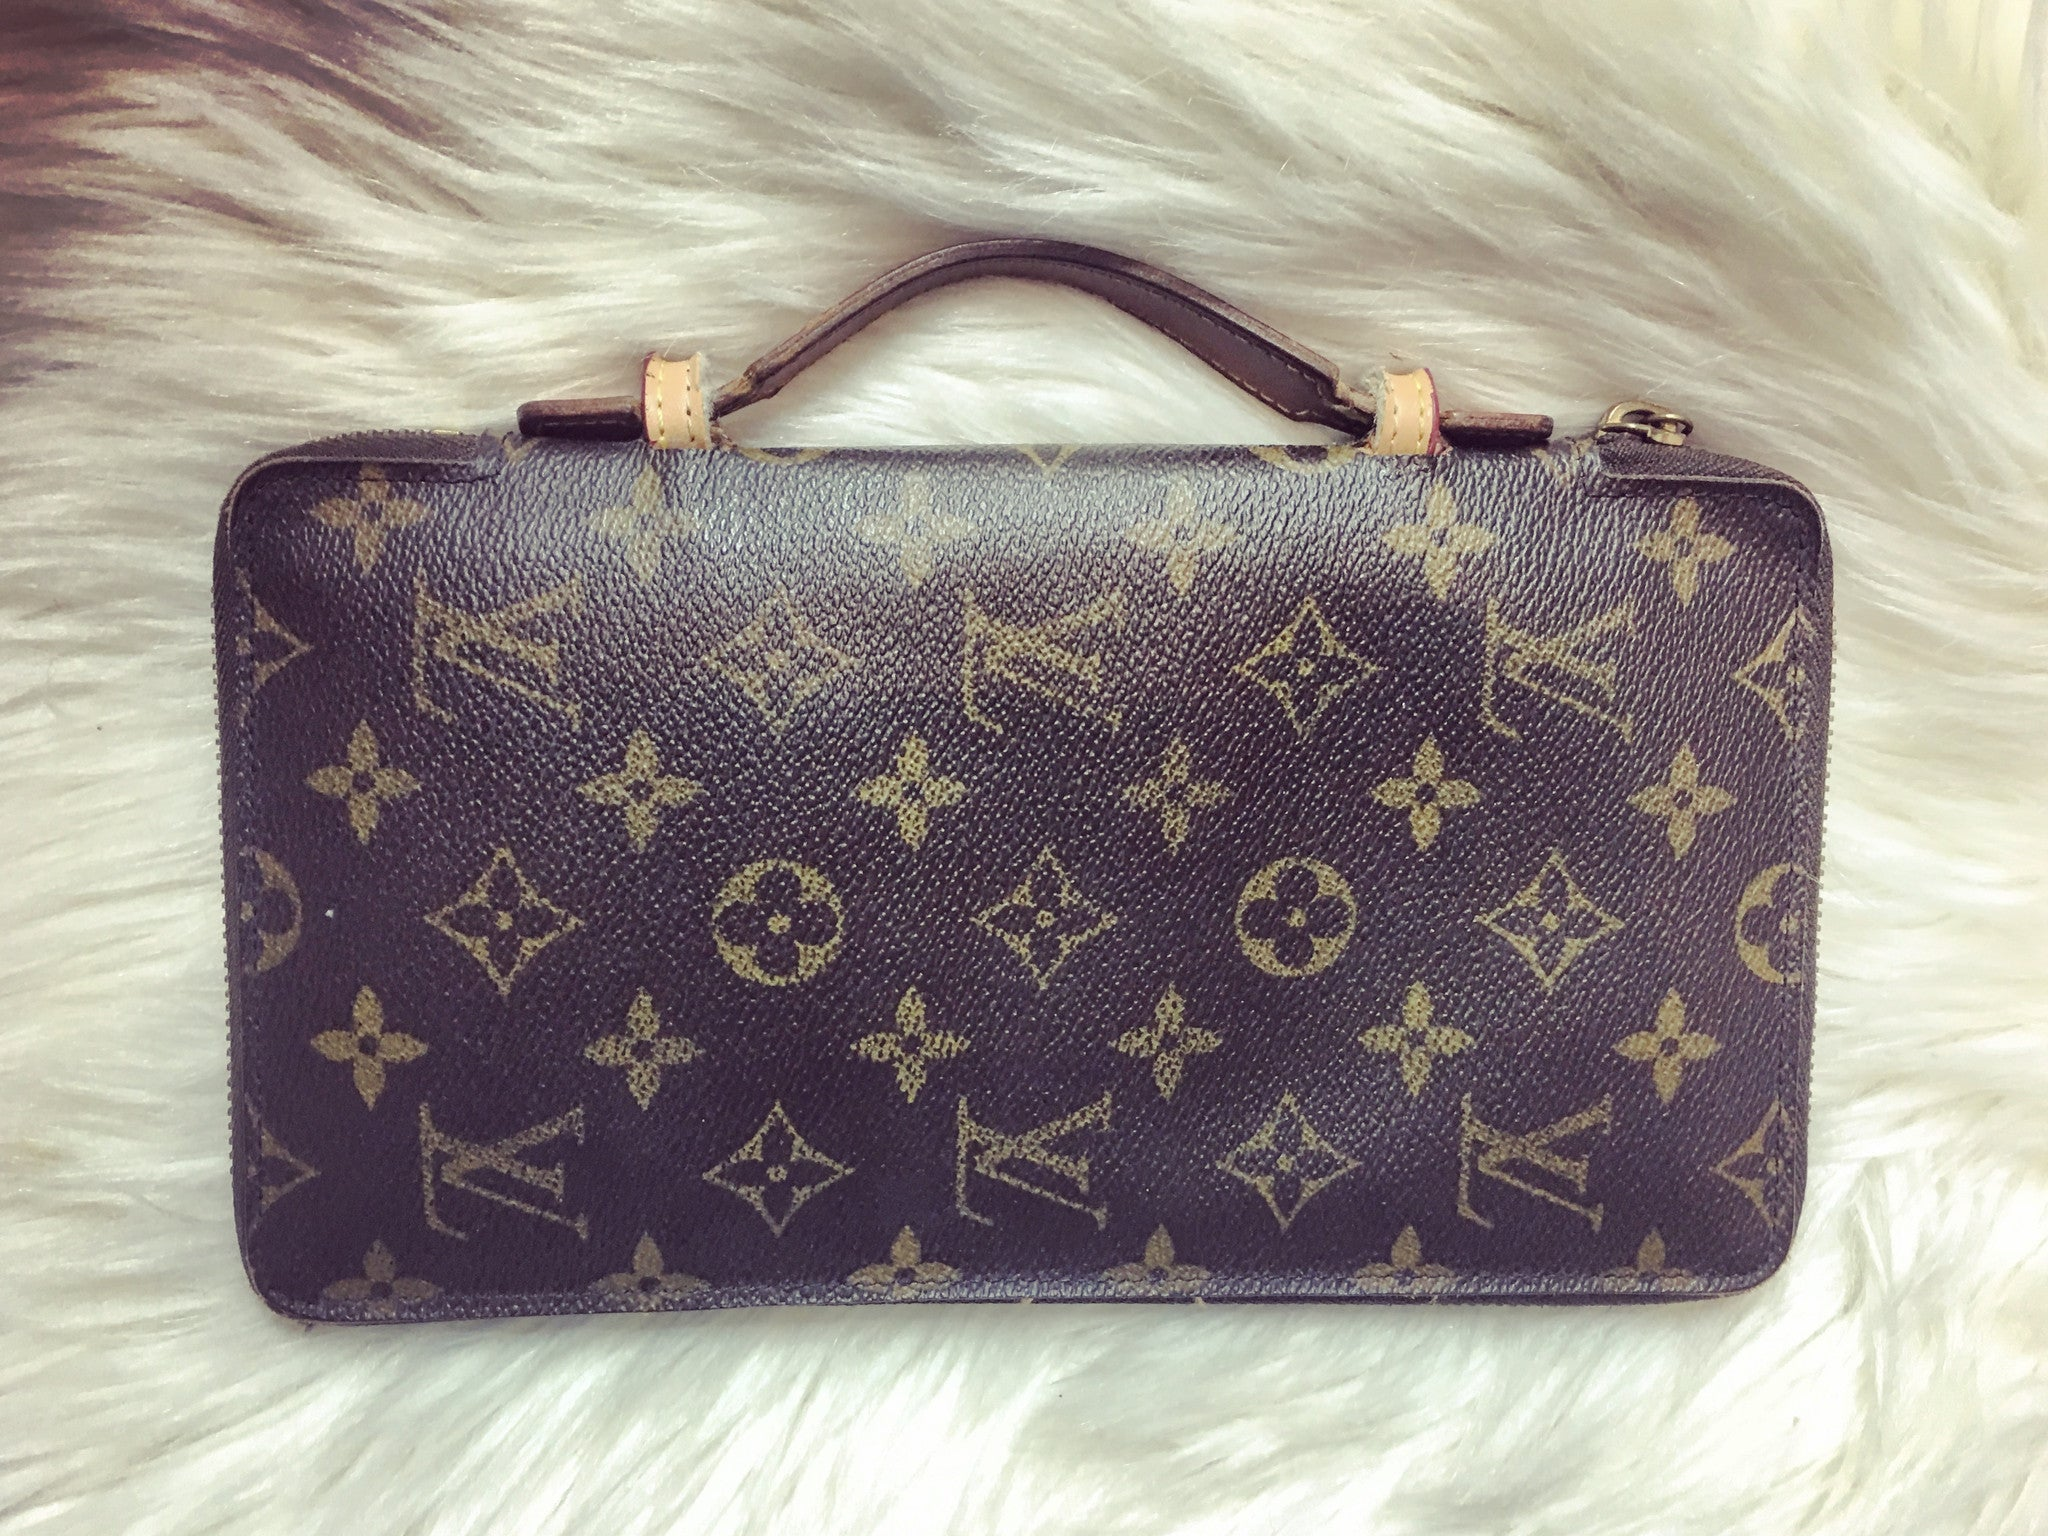 LOUIS VUITTON Monogram Zippy Organizer Travel Clutch Wallet